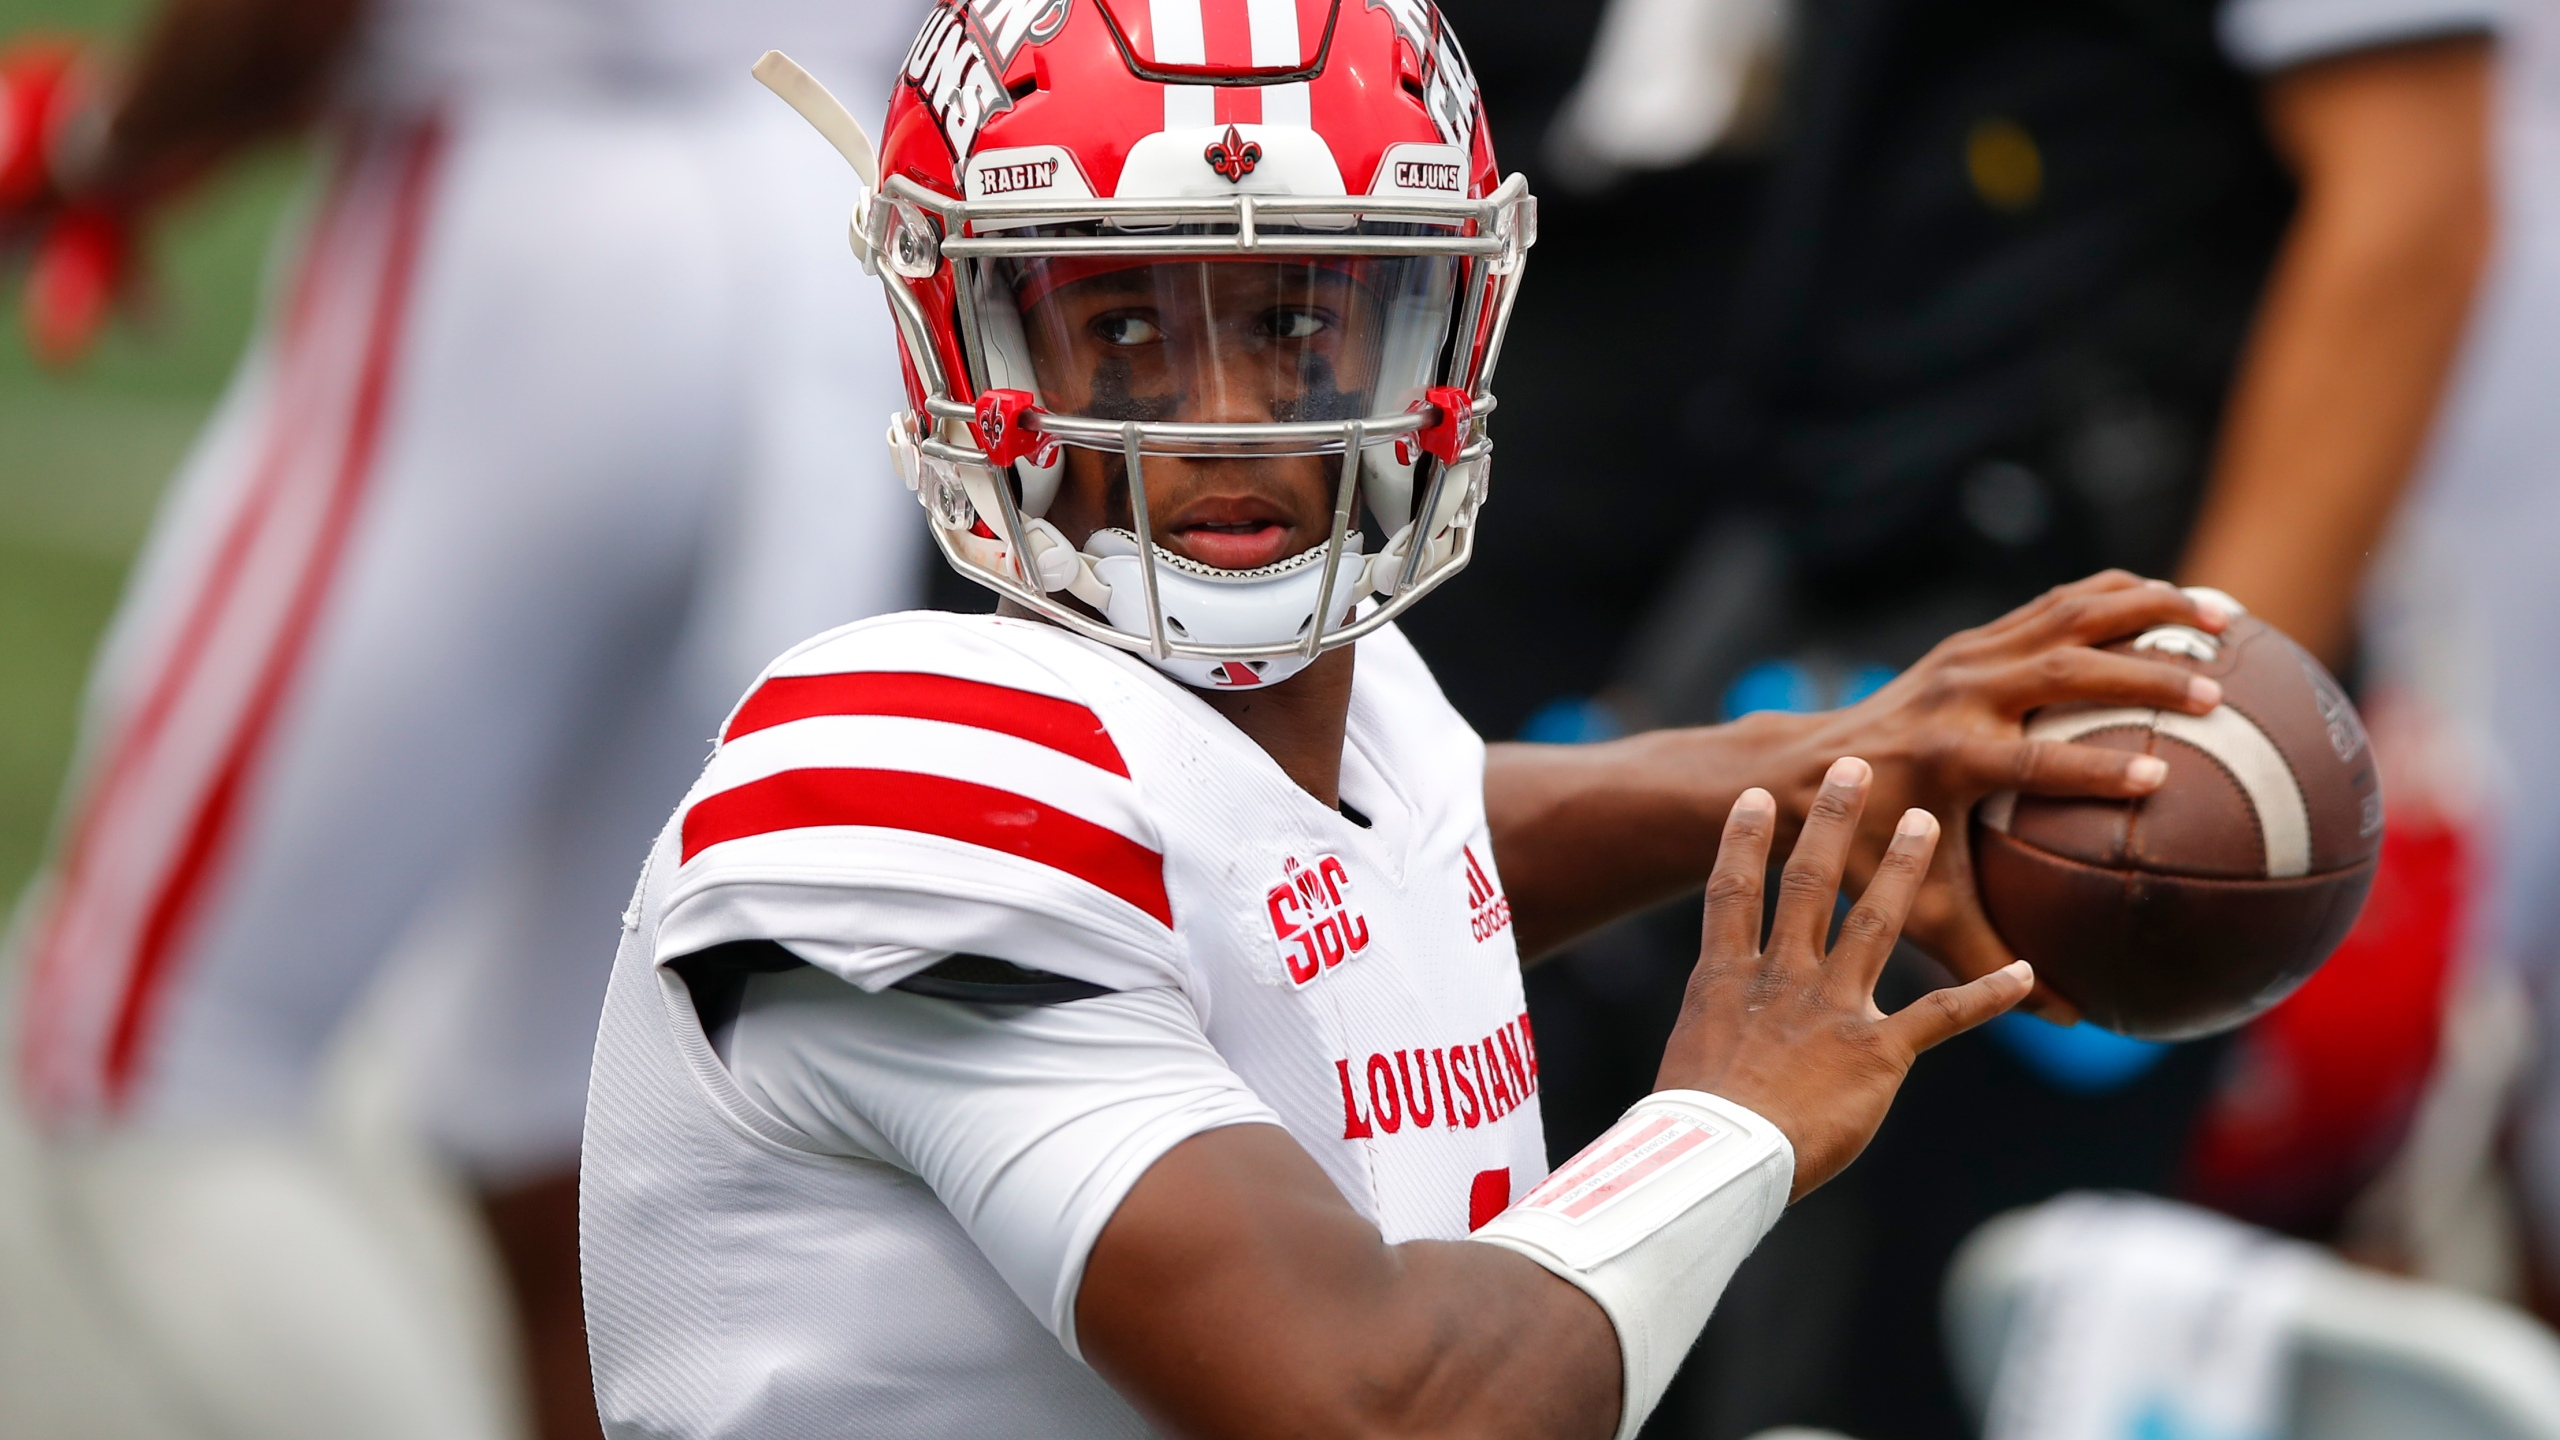 ATLANTA, GA - SEPTEMBER 19: Levi Lewis #1 of the Louisiana-Lafayette Ragin Cajuns warms up on the sideline during the second half against the Georgia State Panthers at Center Parc Stadium on September 19, 2020 in Atlanta, Georgia. (Photo by Todd Kirkland/Getty Images)